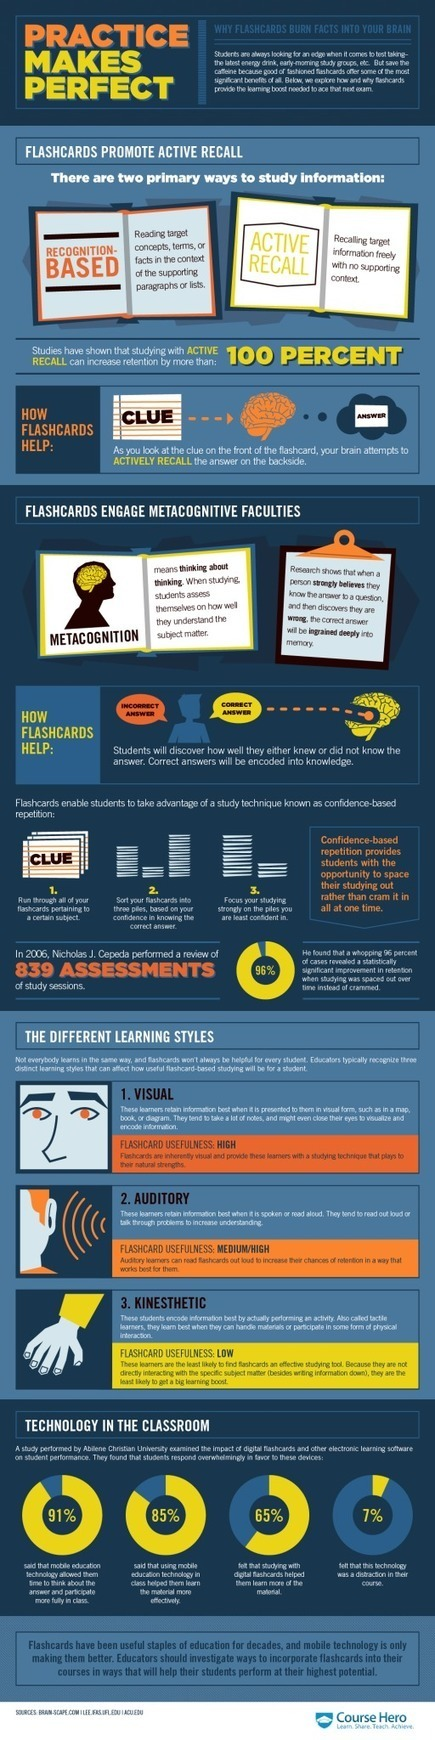 The Significance of Flashcards for Learning Infographic | teaching and technology | Scoop.it